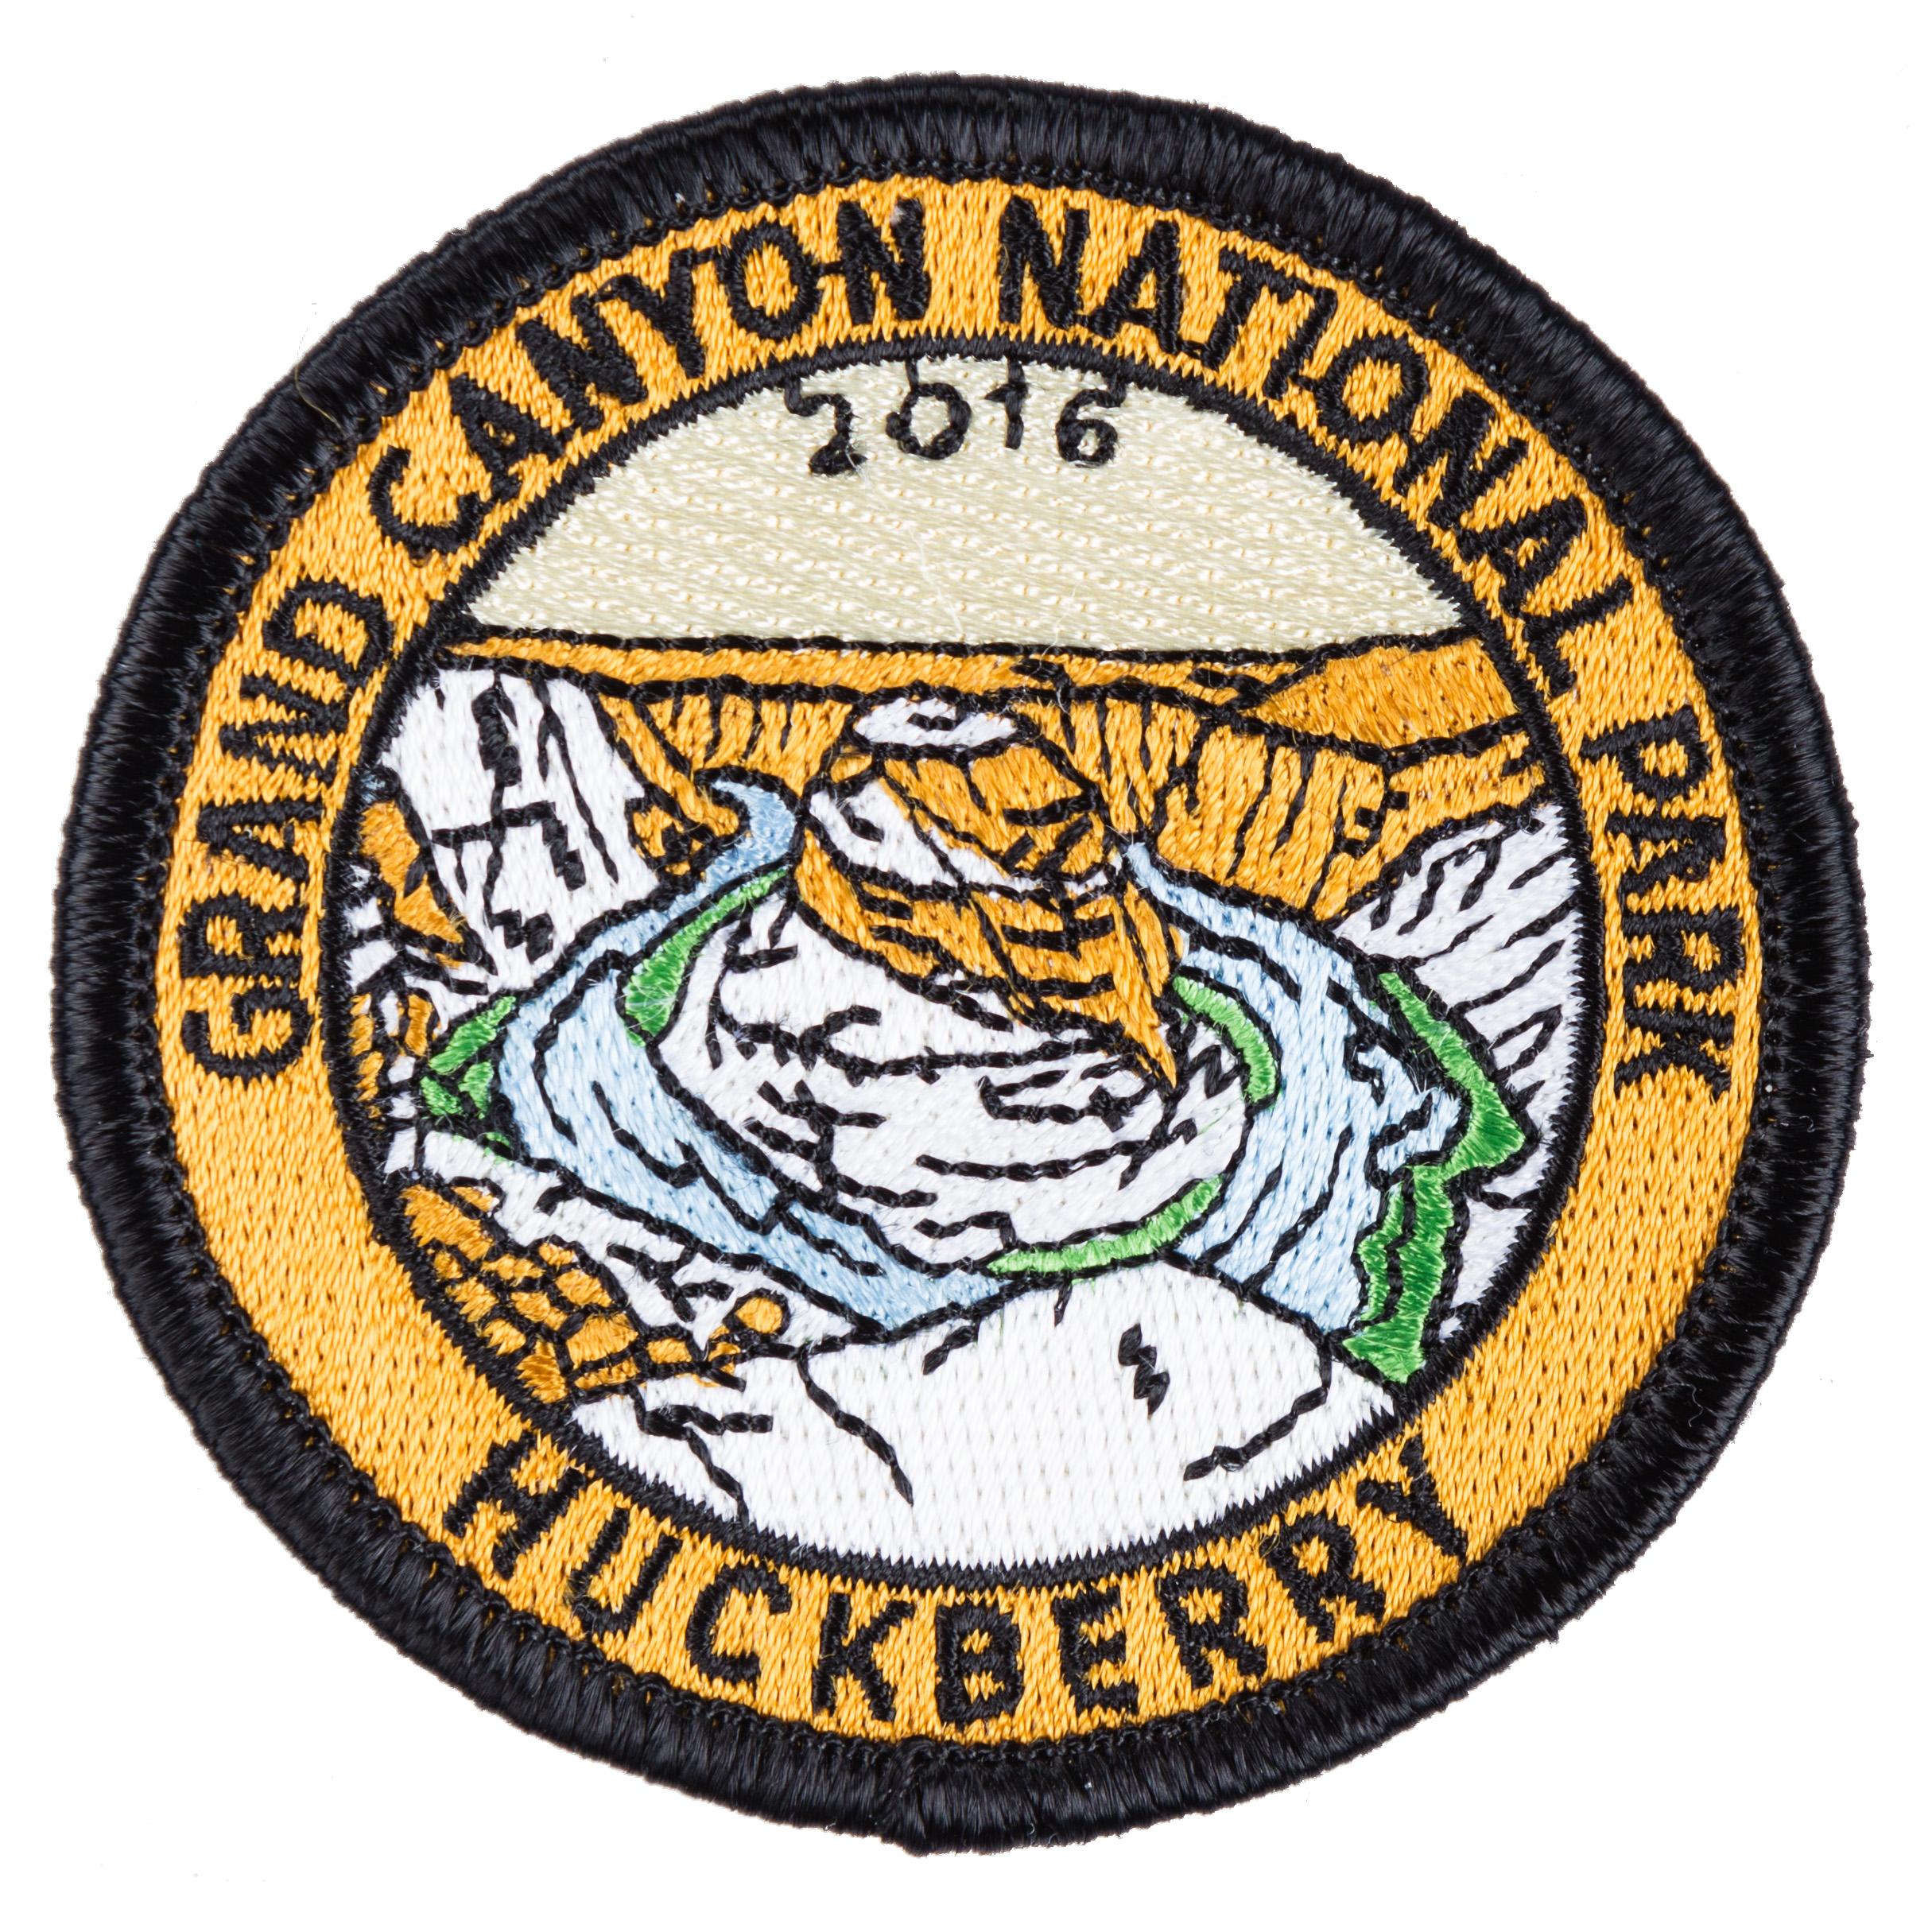 Huckberry Grand Canyon National Park Patch Huckberry